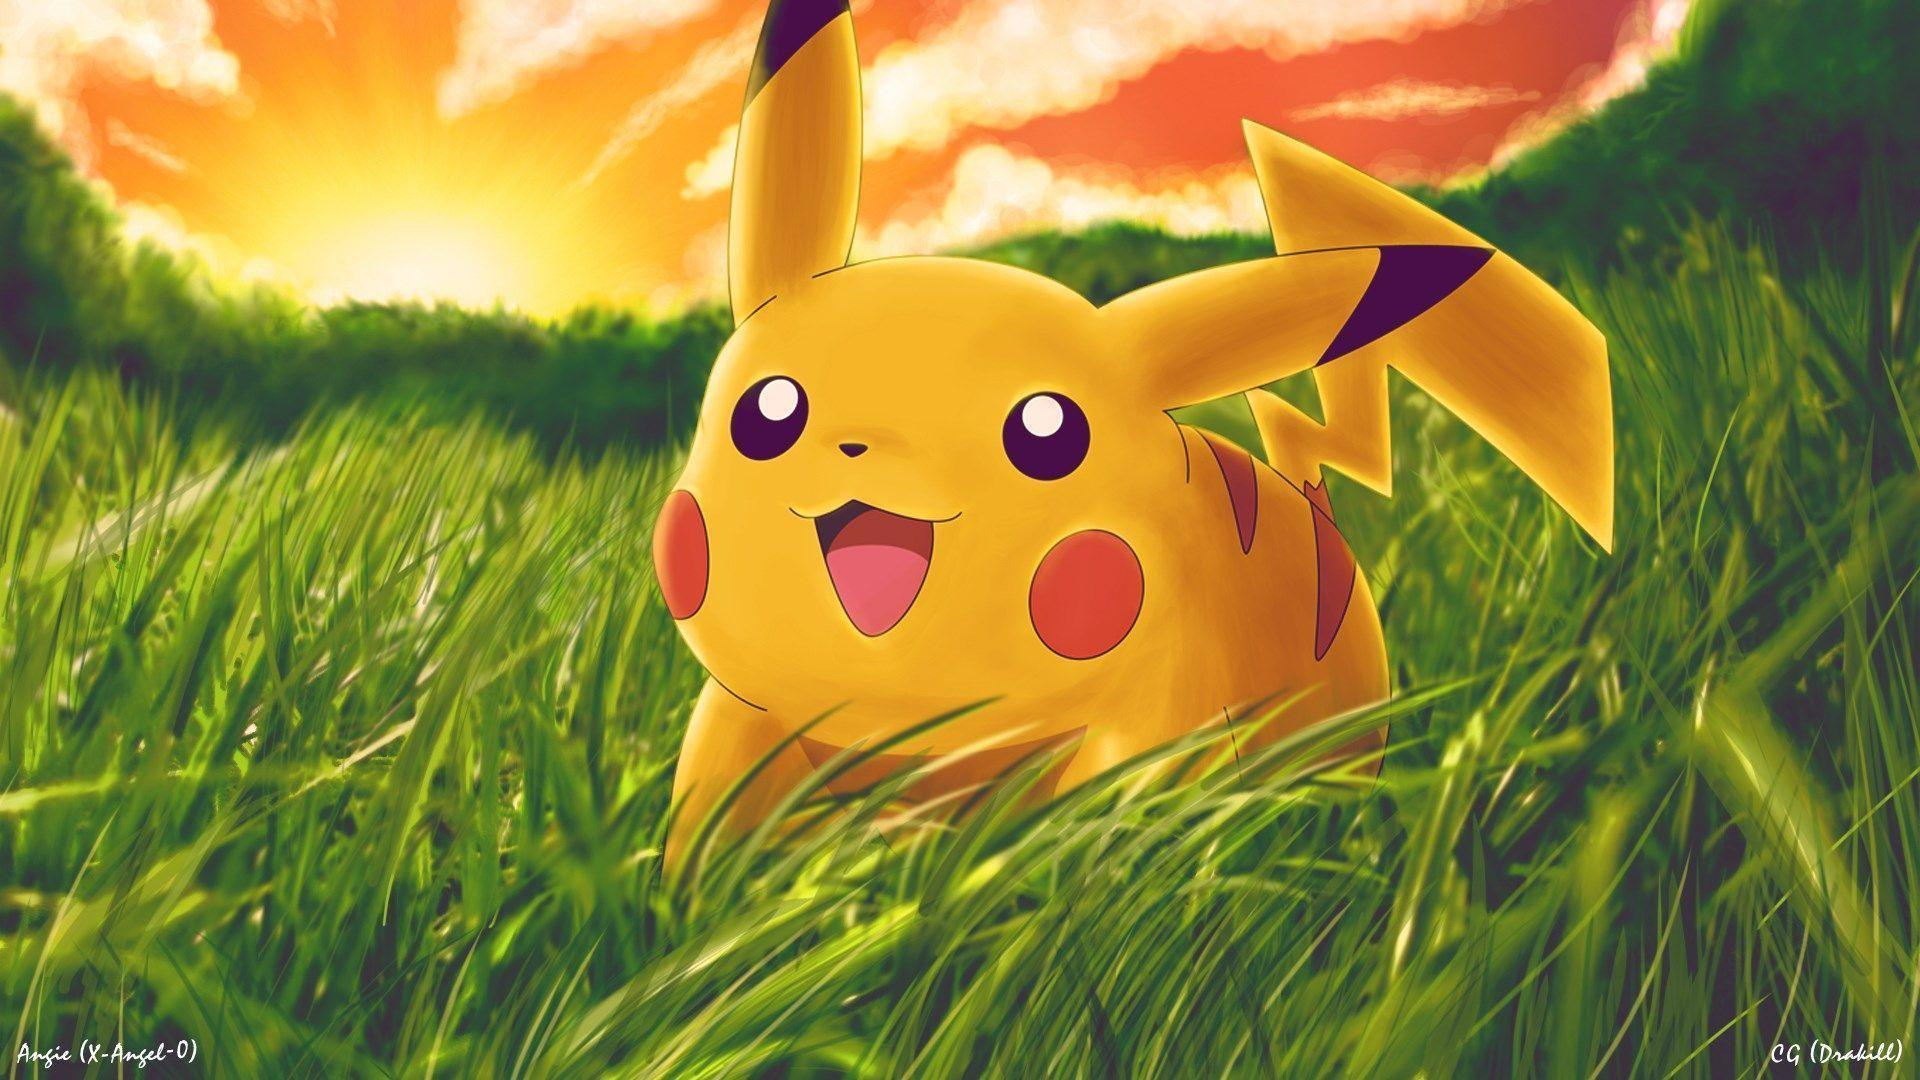 Pikachu Pokemon Cartoon Picture - Cartoon HD Wallpapers